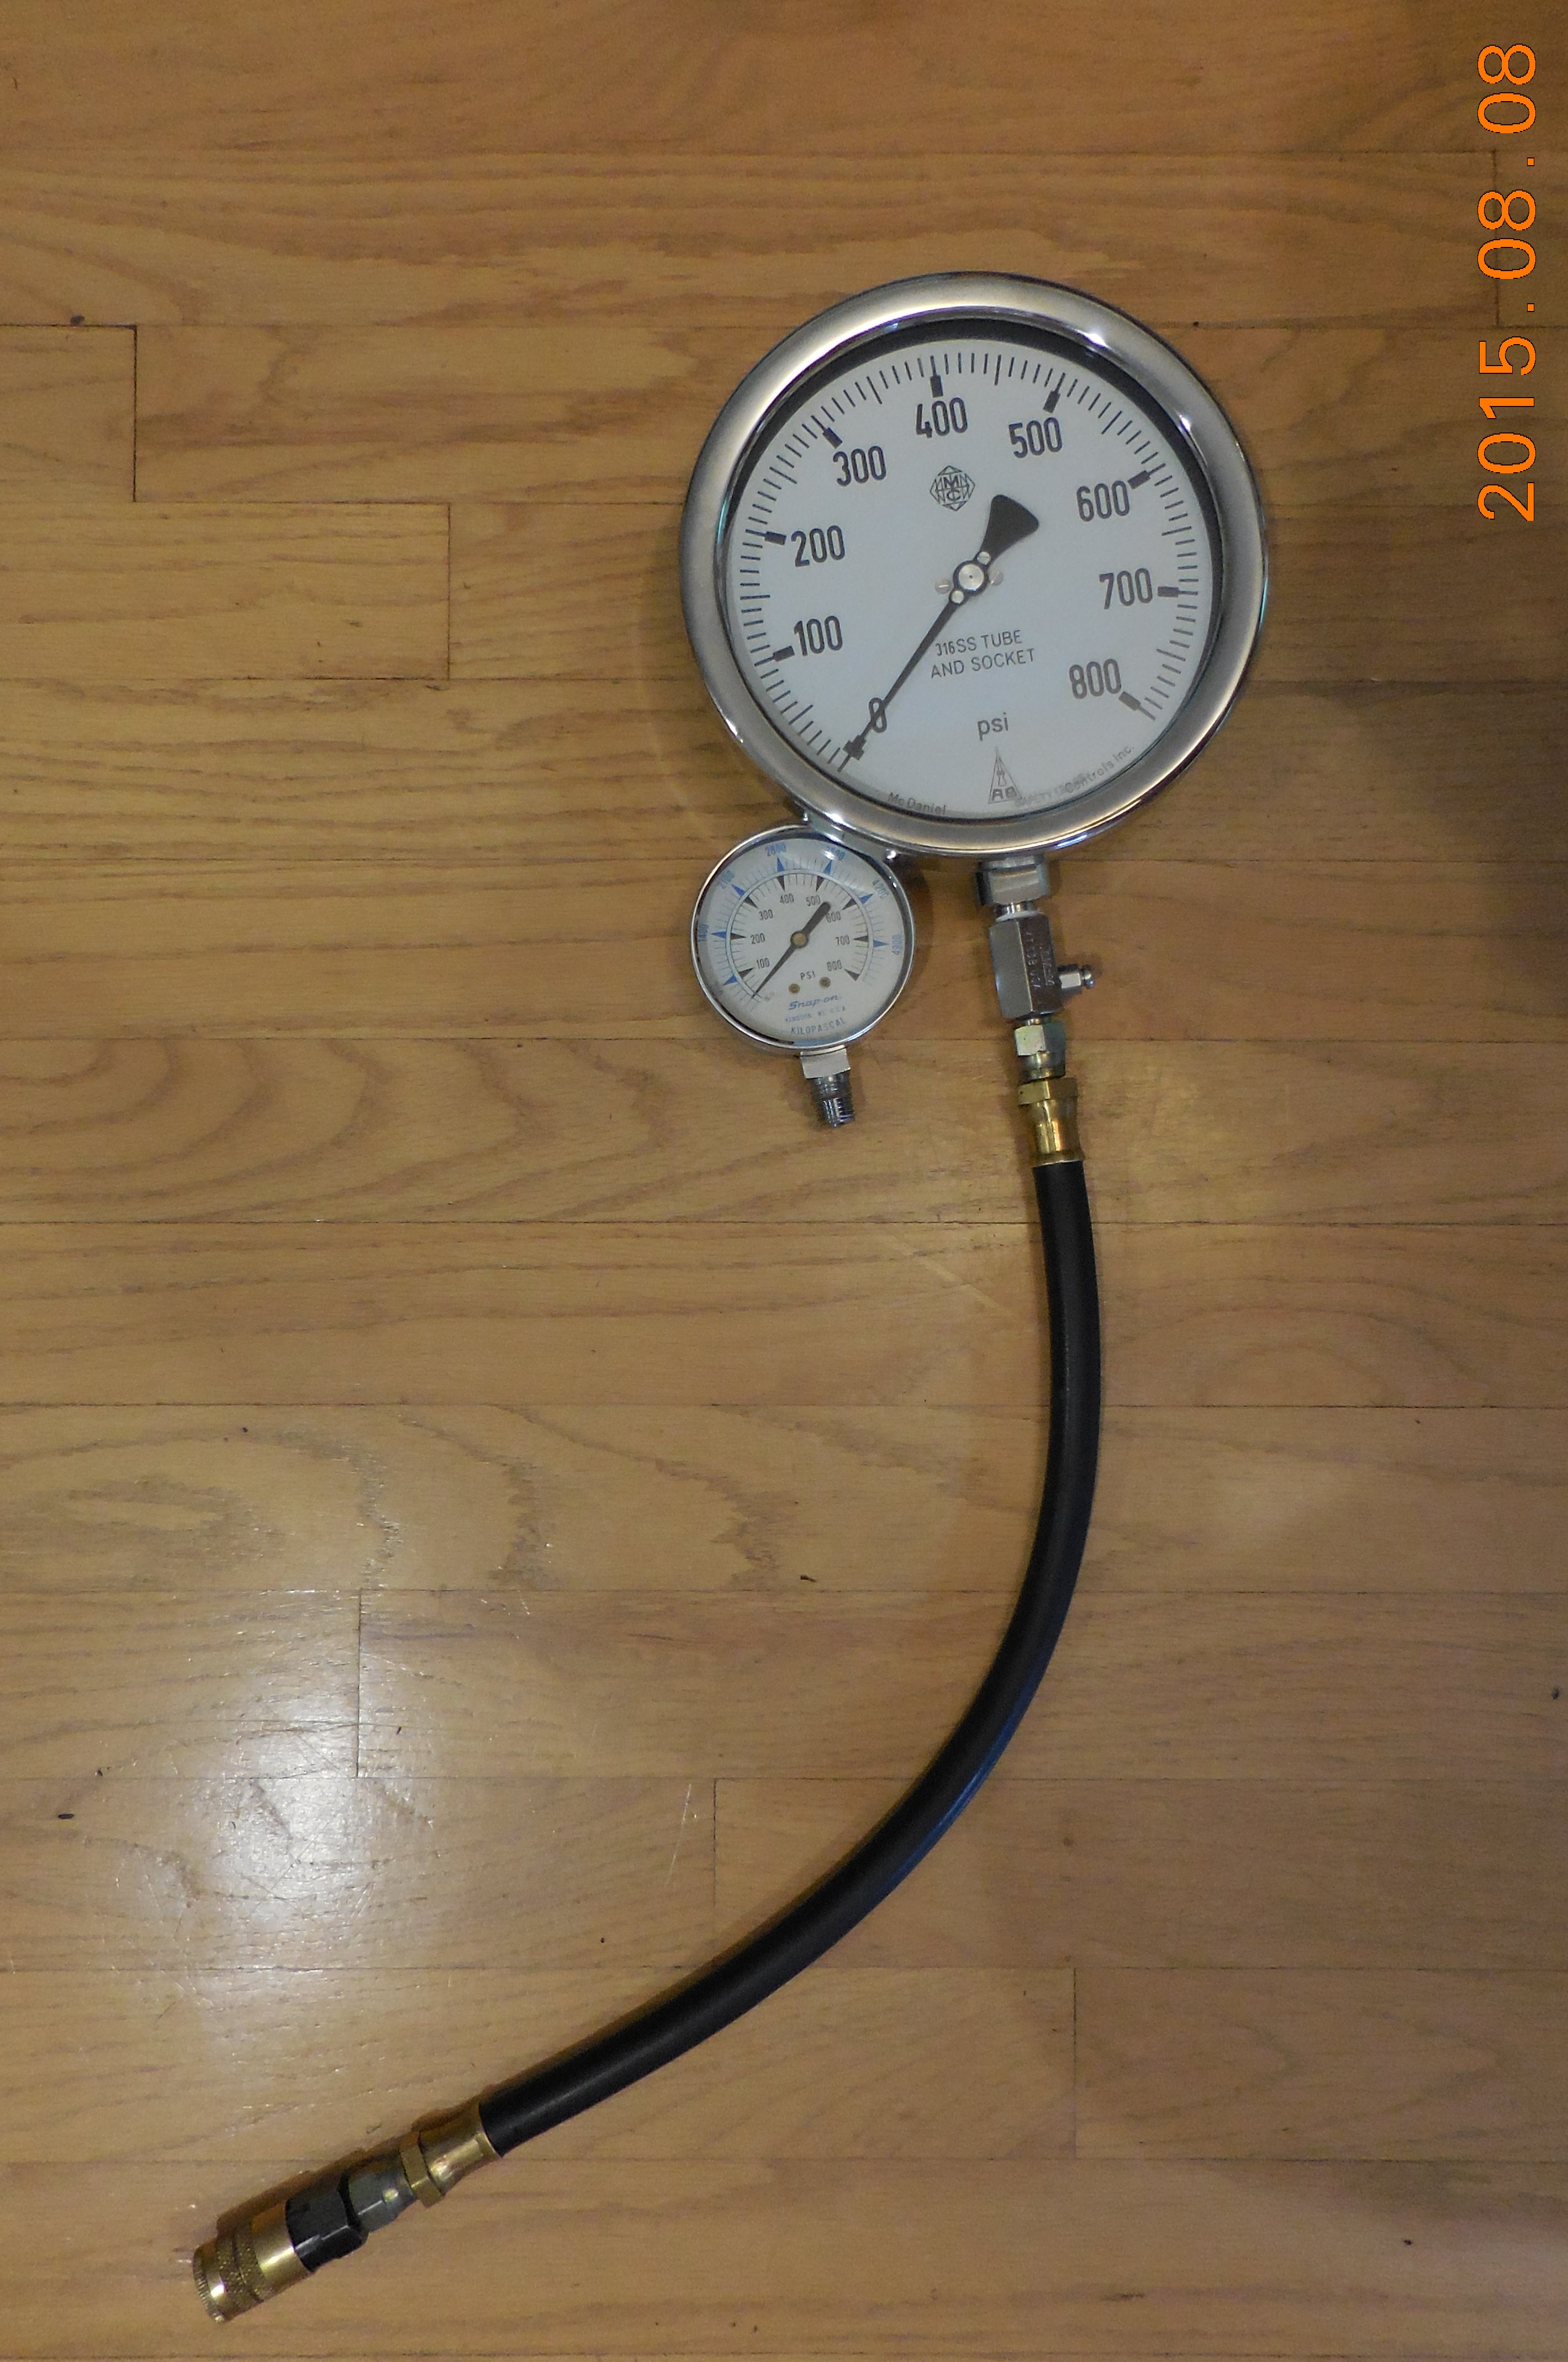 Diesel_Compression_Gauge_08b.jpg